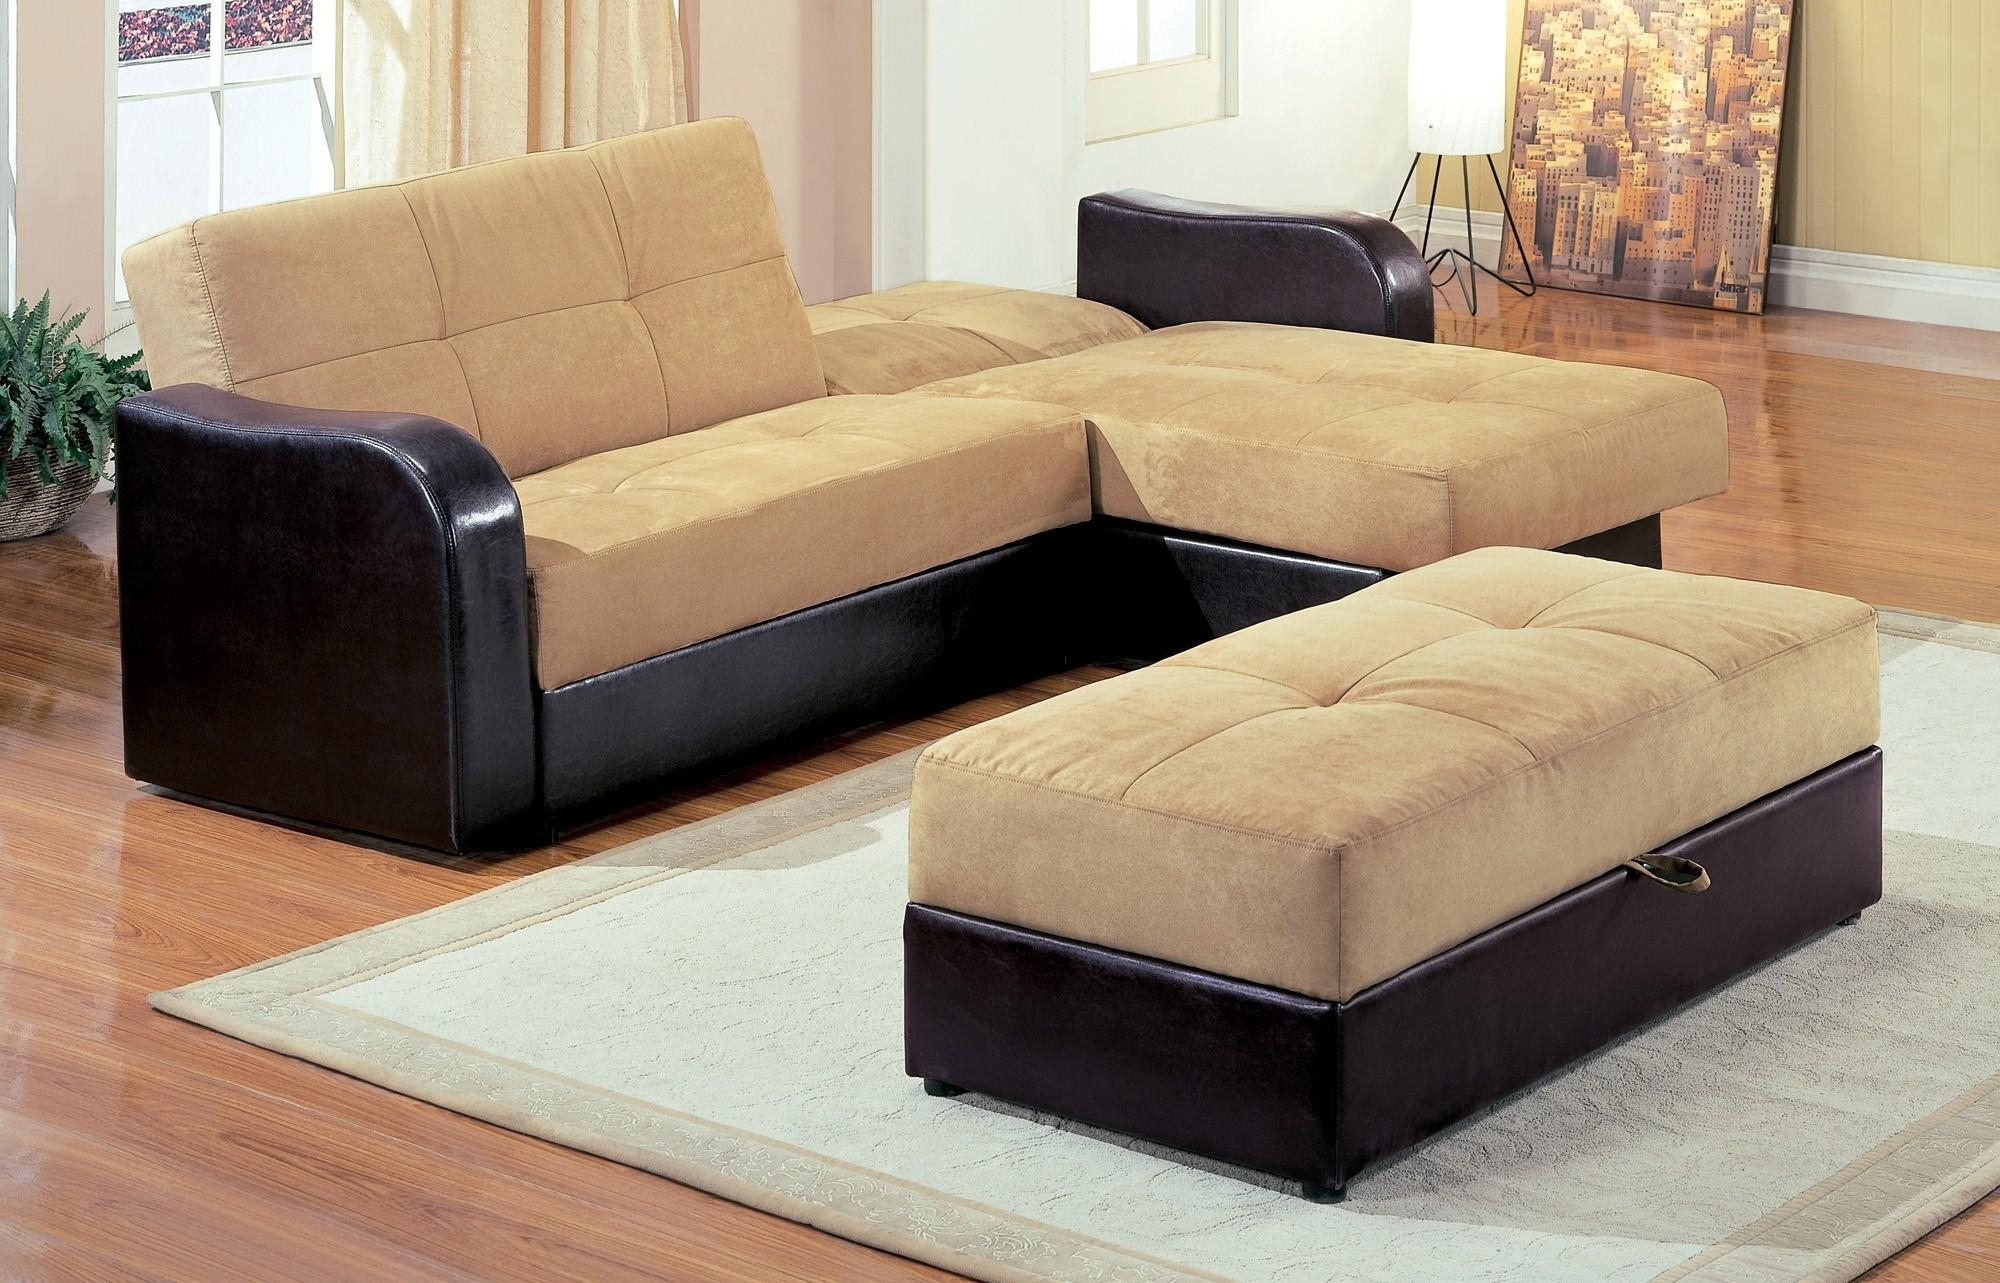 Leather L Shaped Couch (Image 15 of 20)